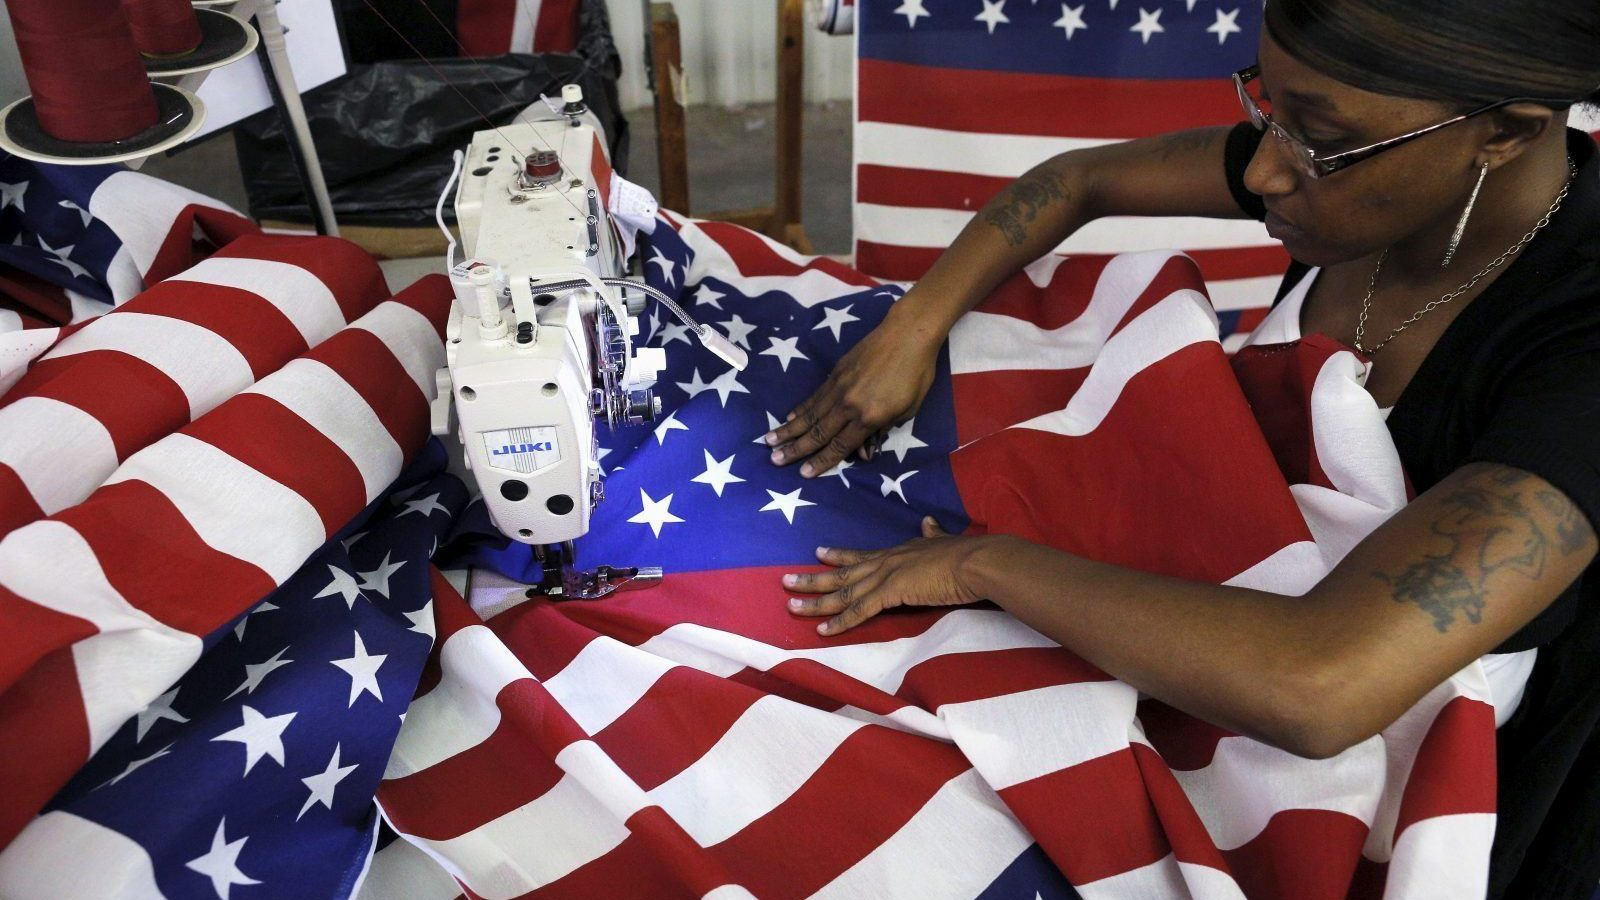 Keisha Hardman cuts and sews U.S. flags at Valley Forge's manufacturing facility in Lane, South Carolina June 23, 2015. Prominent U.S. flag makers said on Tuesday they will stop manufacturing and selling Confederate battle flags after last week's attack on worshippers at a black church in Charleston, South Carolina. Reggie VandenBosch, vice president of sales at privately owned Valley Forge Flag, said the Pennsylvania-based company came to the decision as pressure grew on South Carolina to remove the banner from outside the State House in Columbia. The 133-year-old company sells millions of flags each year, VandenBosch said, with Confederate flags making up only a tiny slice of that business. REUTERS/Brian Snyder - GF10000137311